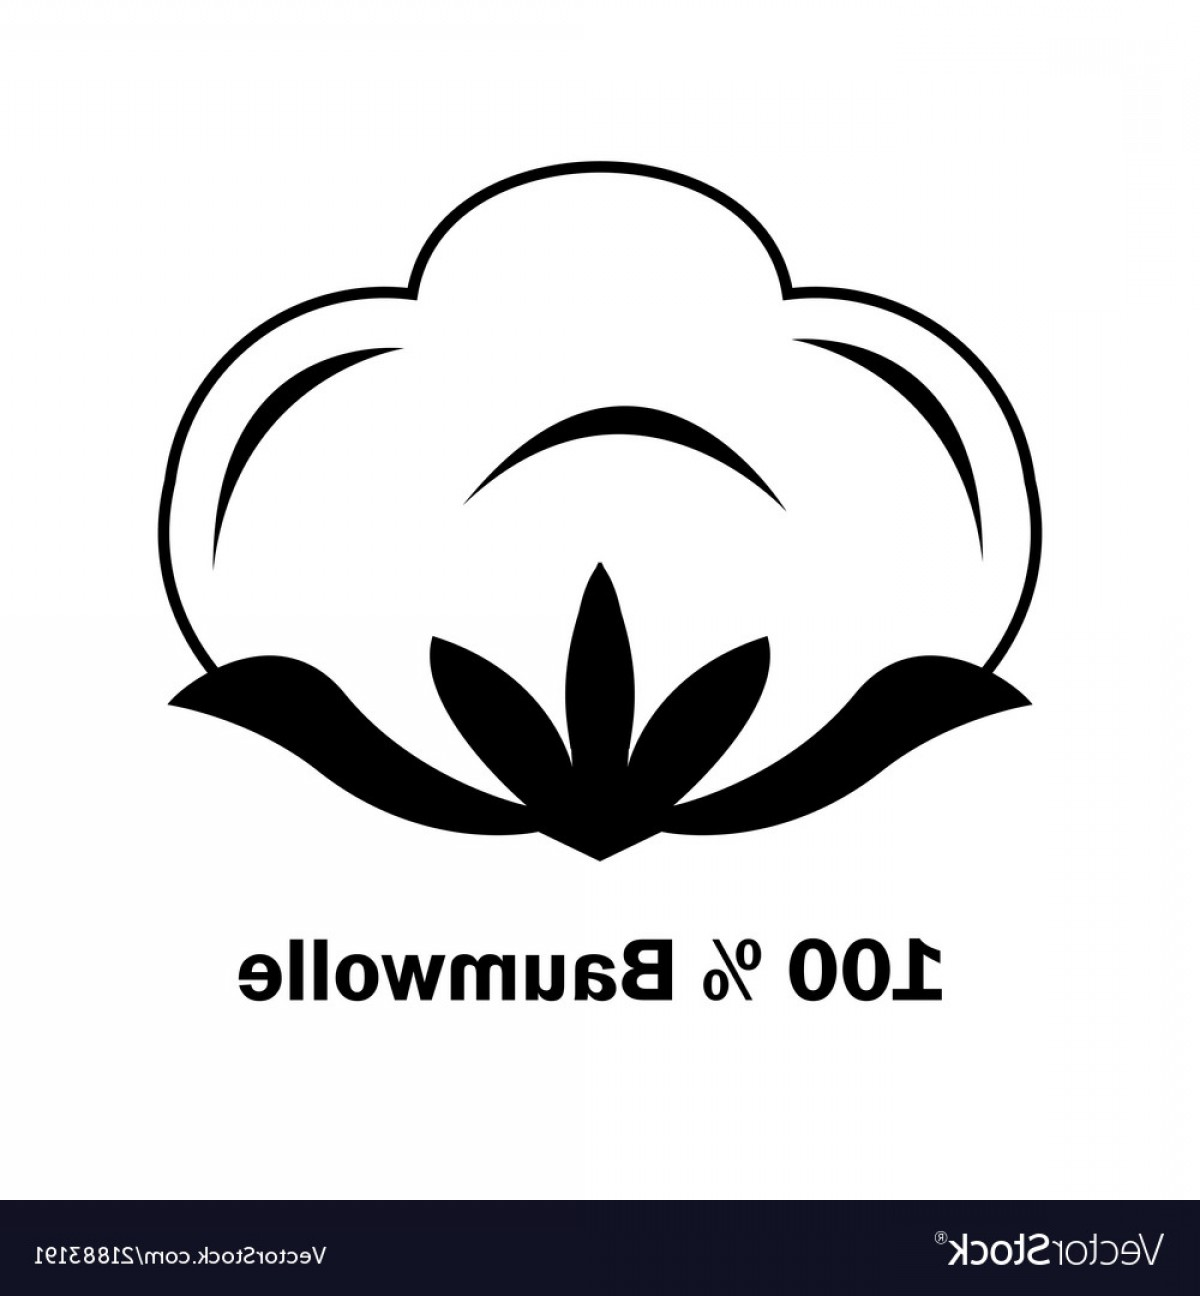 Cotton Vector Graphic: Cotton Boll Or Flower Line Art Icon For Apps And Vector